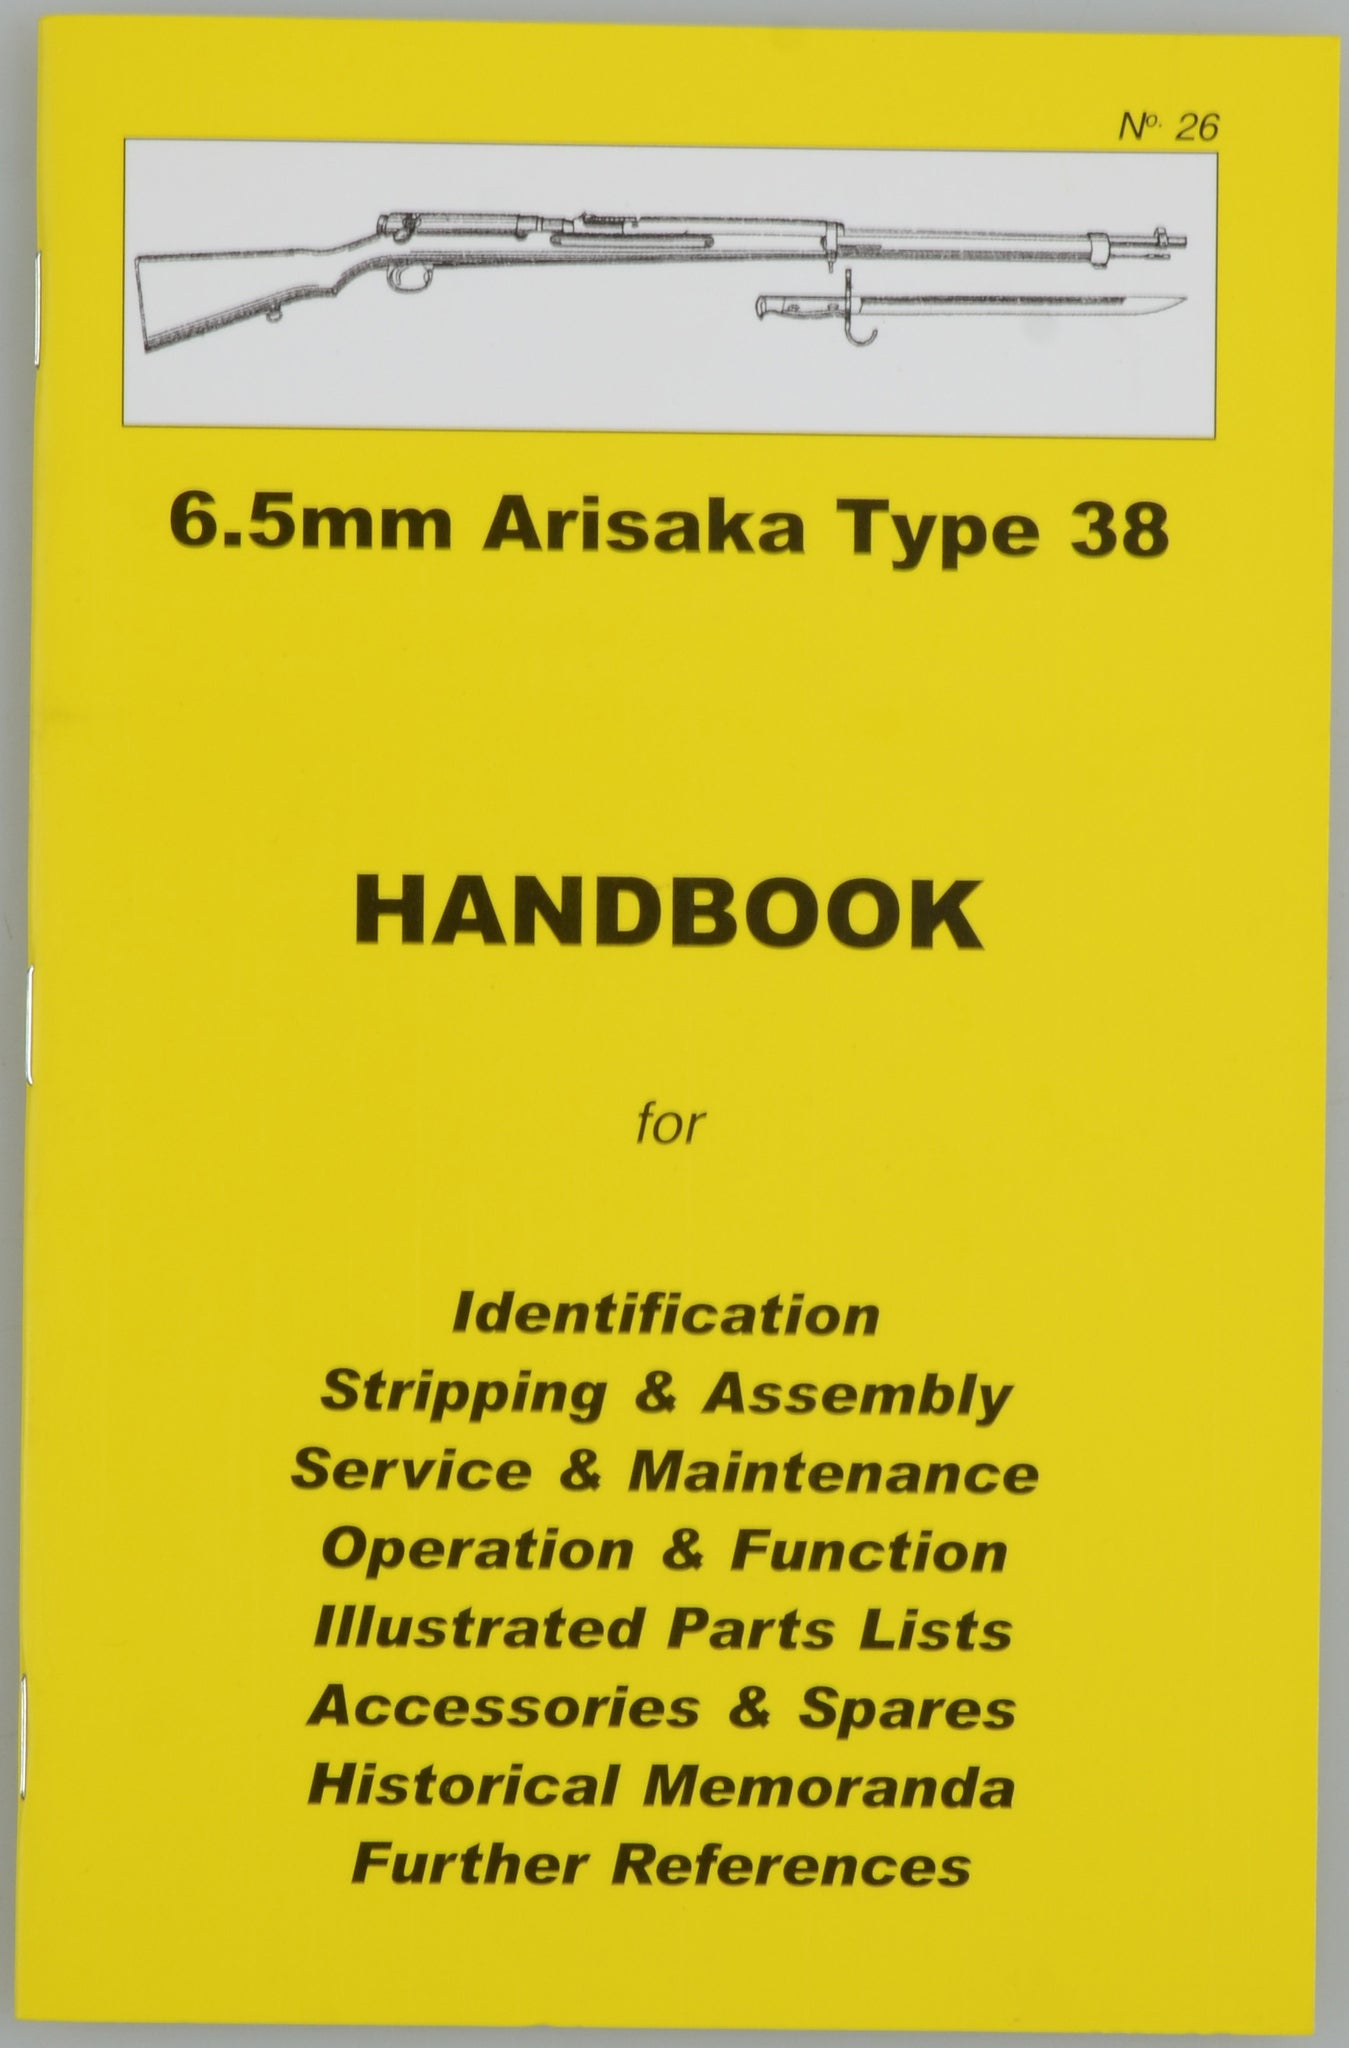 6.5mm Arisaka Type 38 HANDBOOK